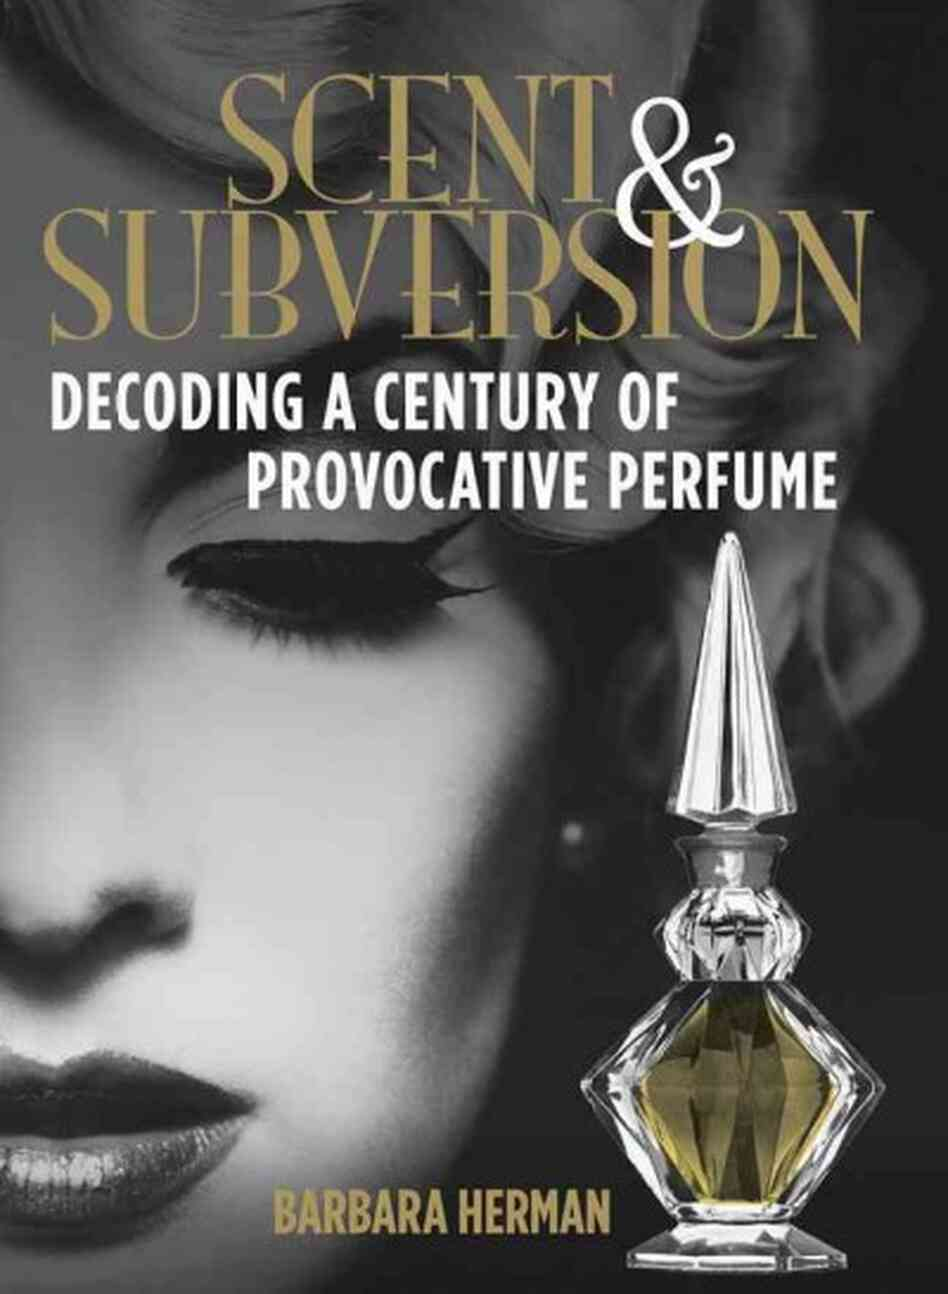 Perfume's Scents Of Subversion? Sweat, Musk And Patchouli ...